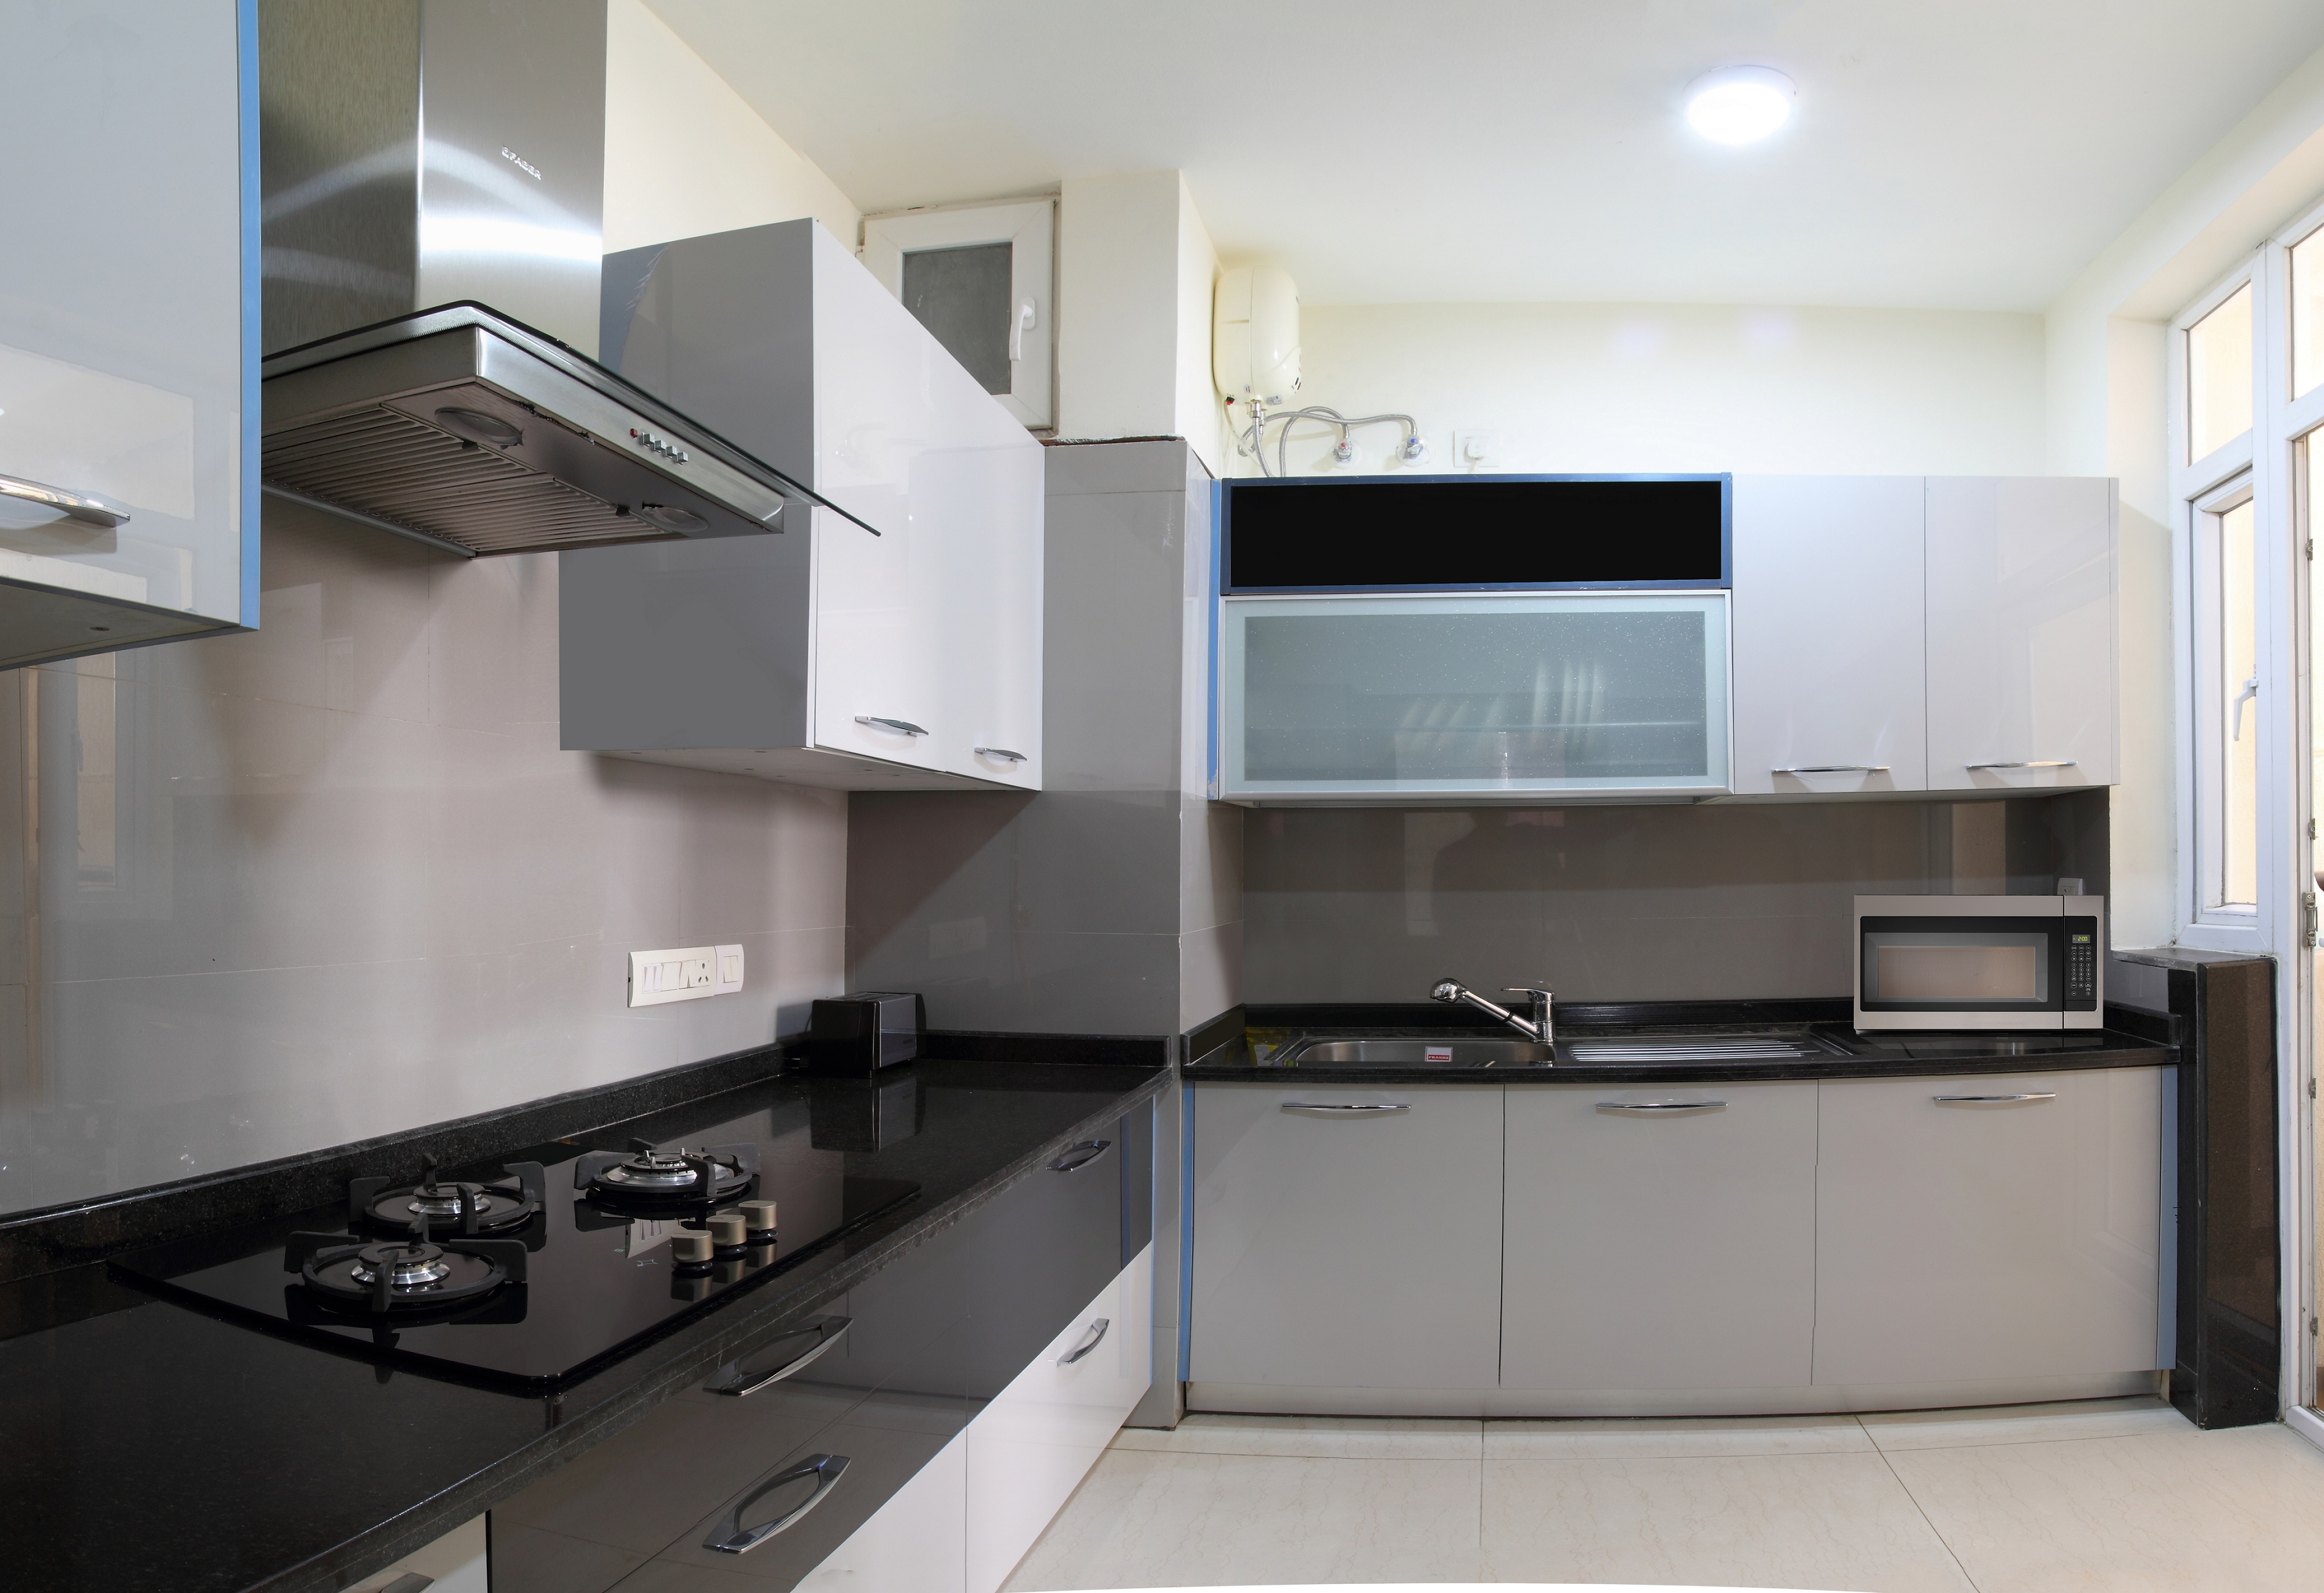 Perch Central Park Sona Road, 2BHK , Kitchen